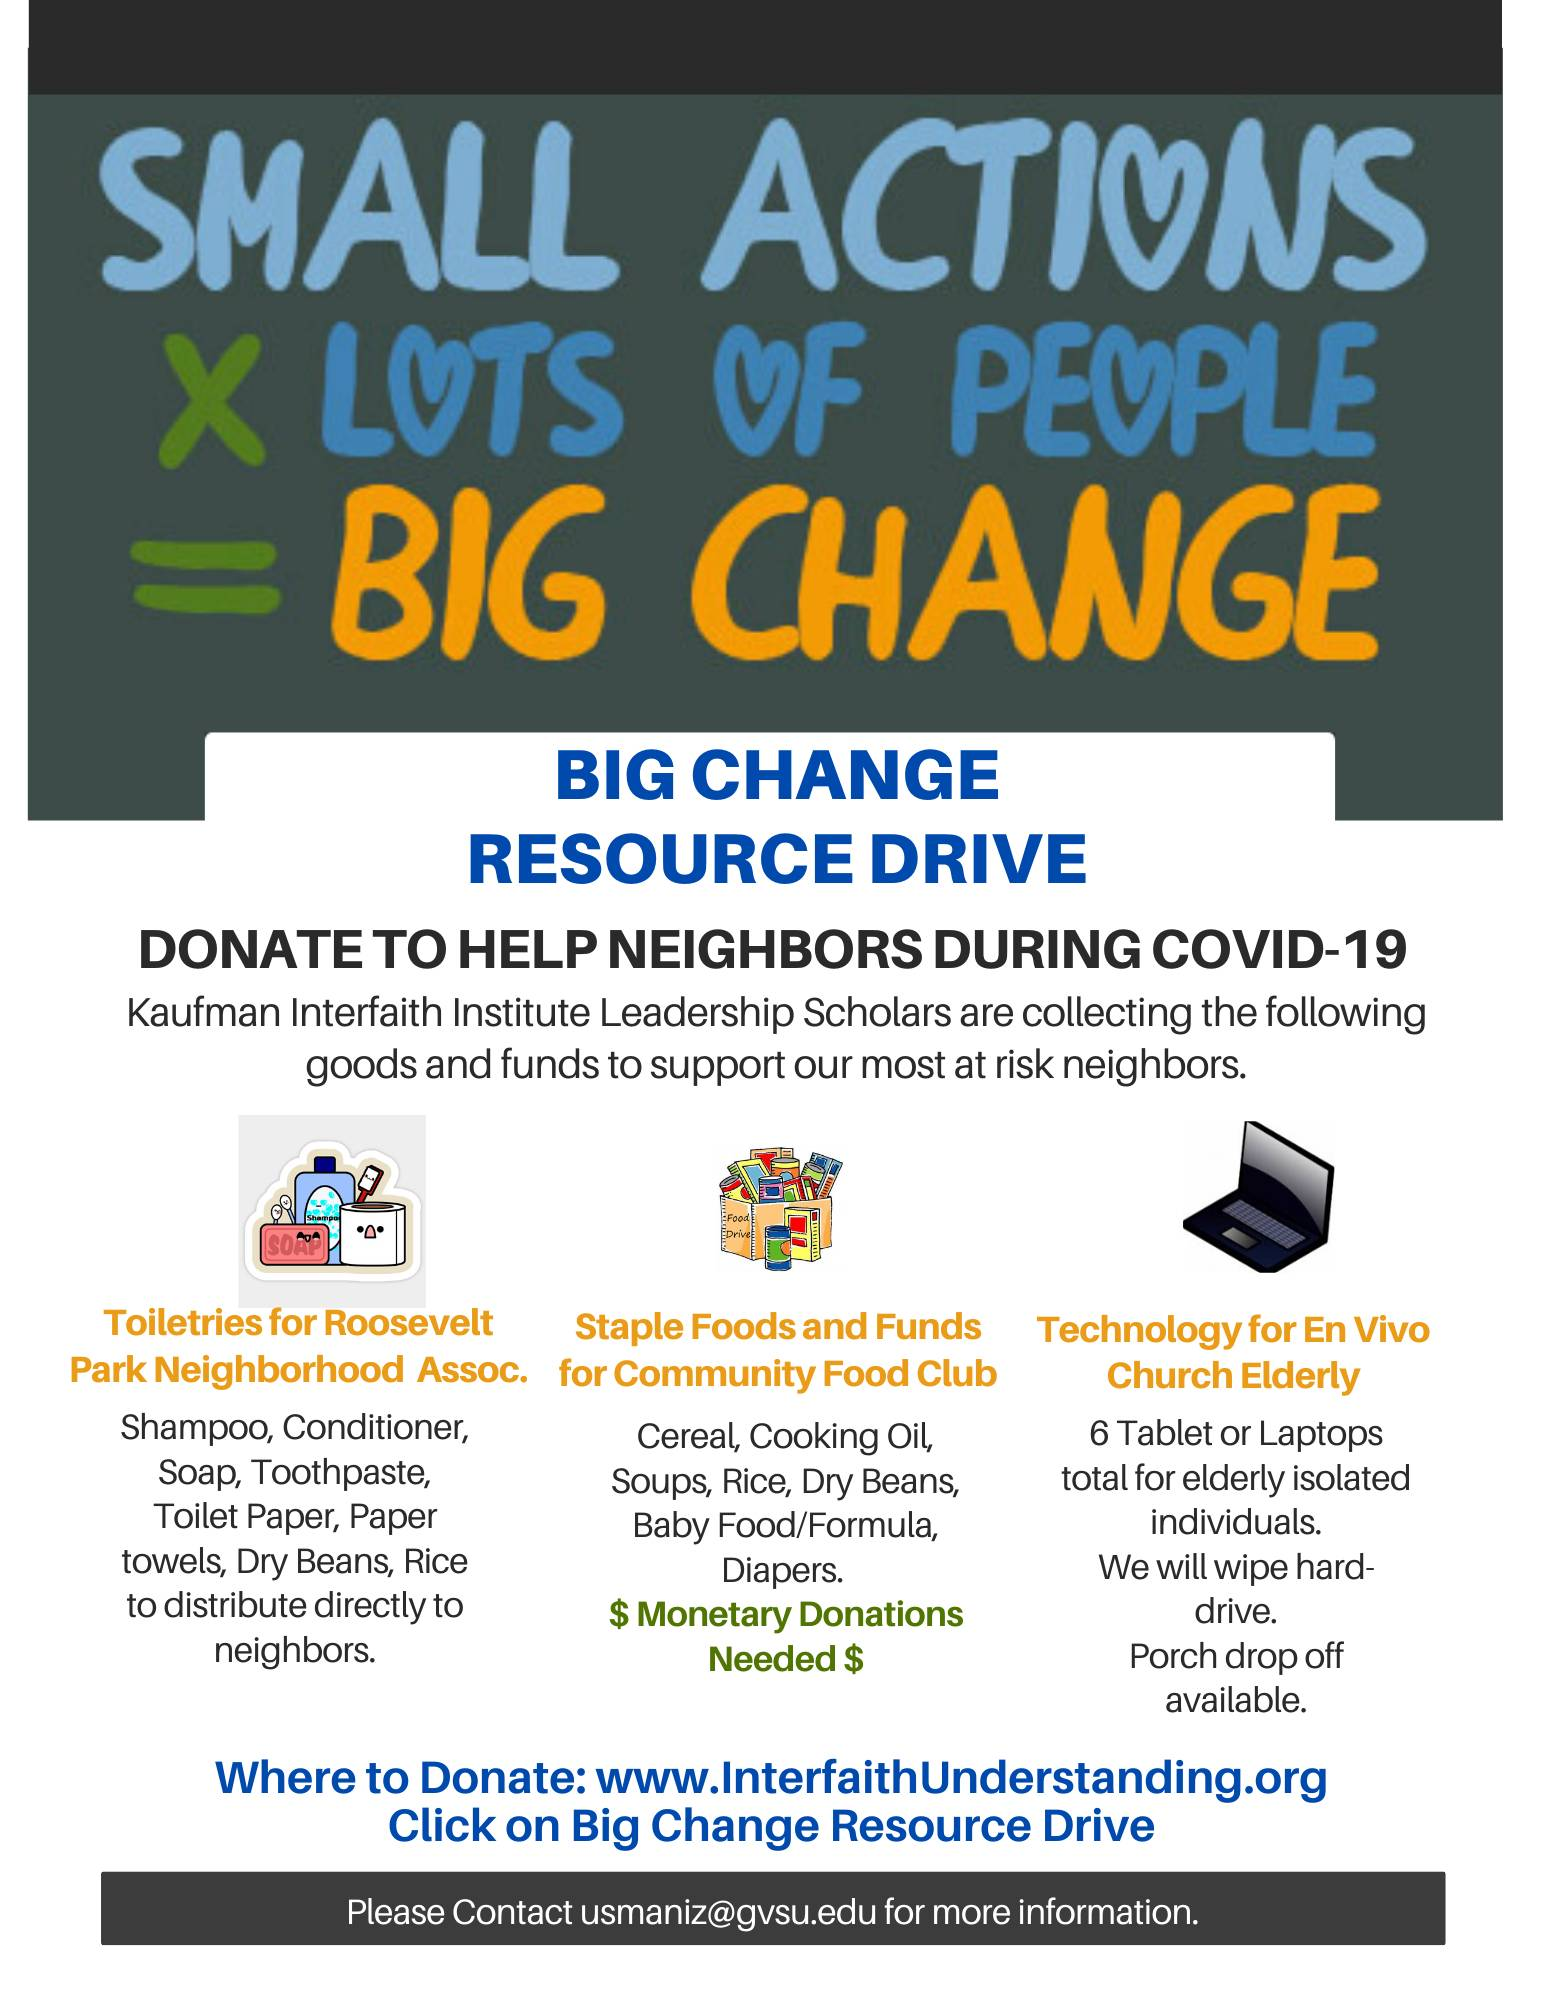 Info on the Big Change Resource Drive - Click for more